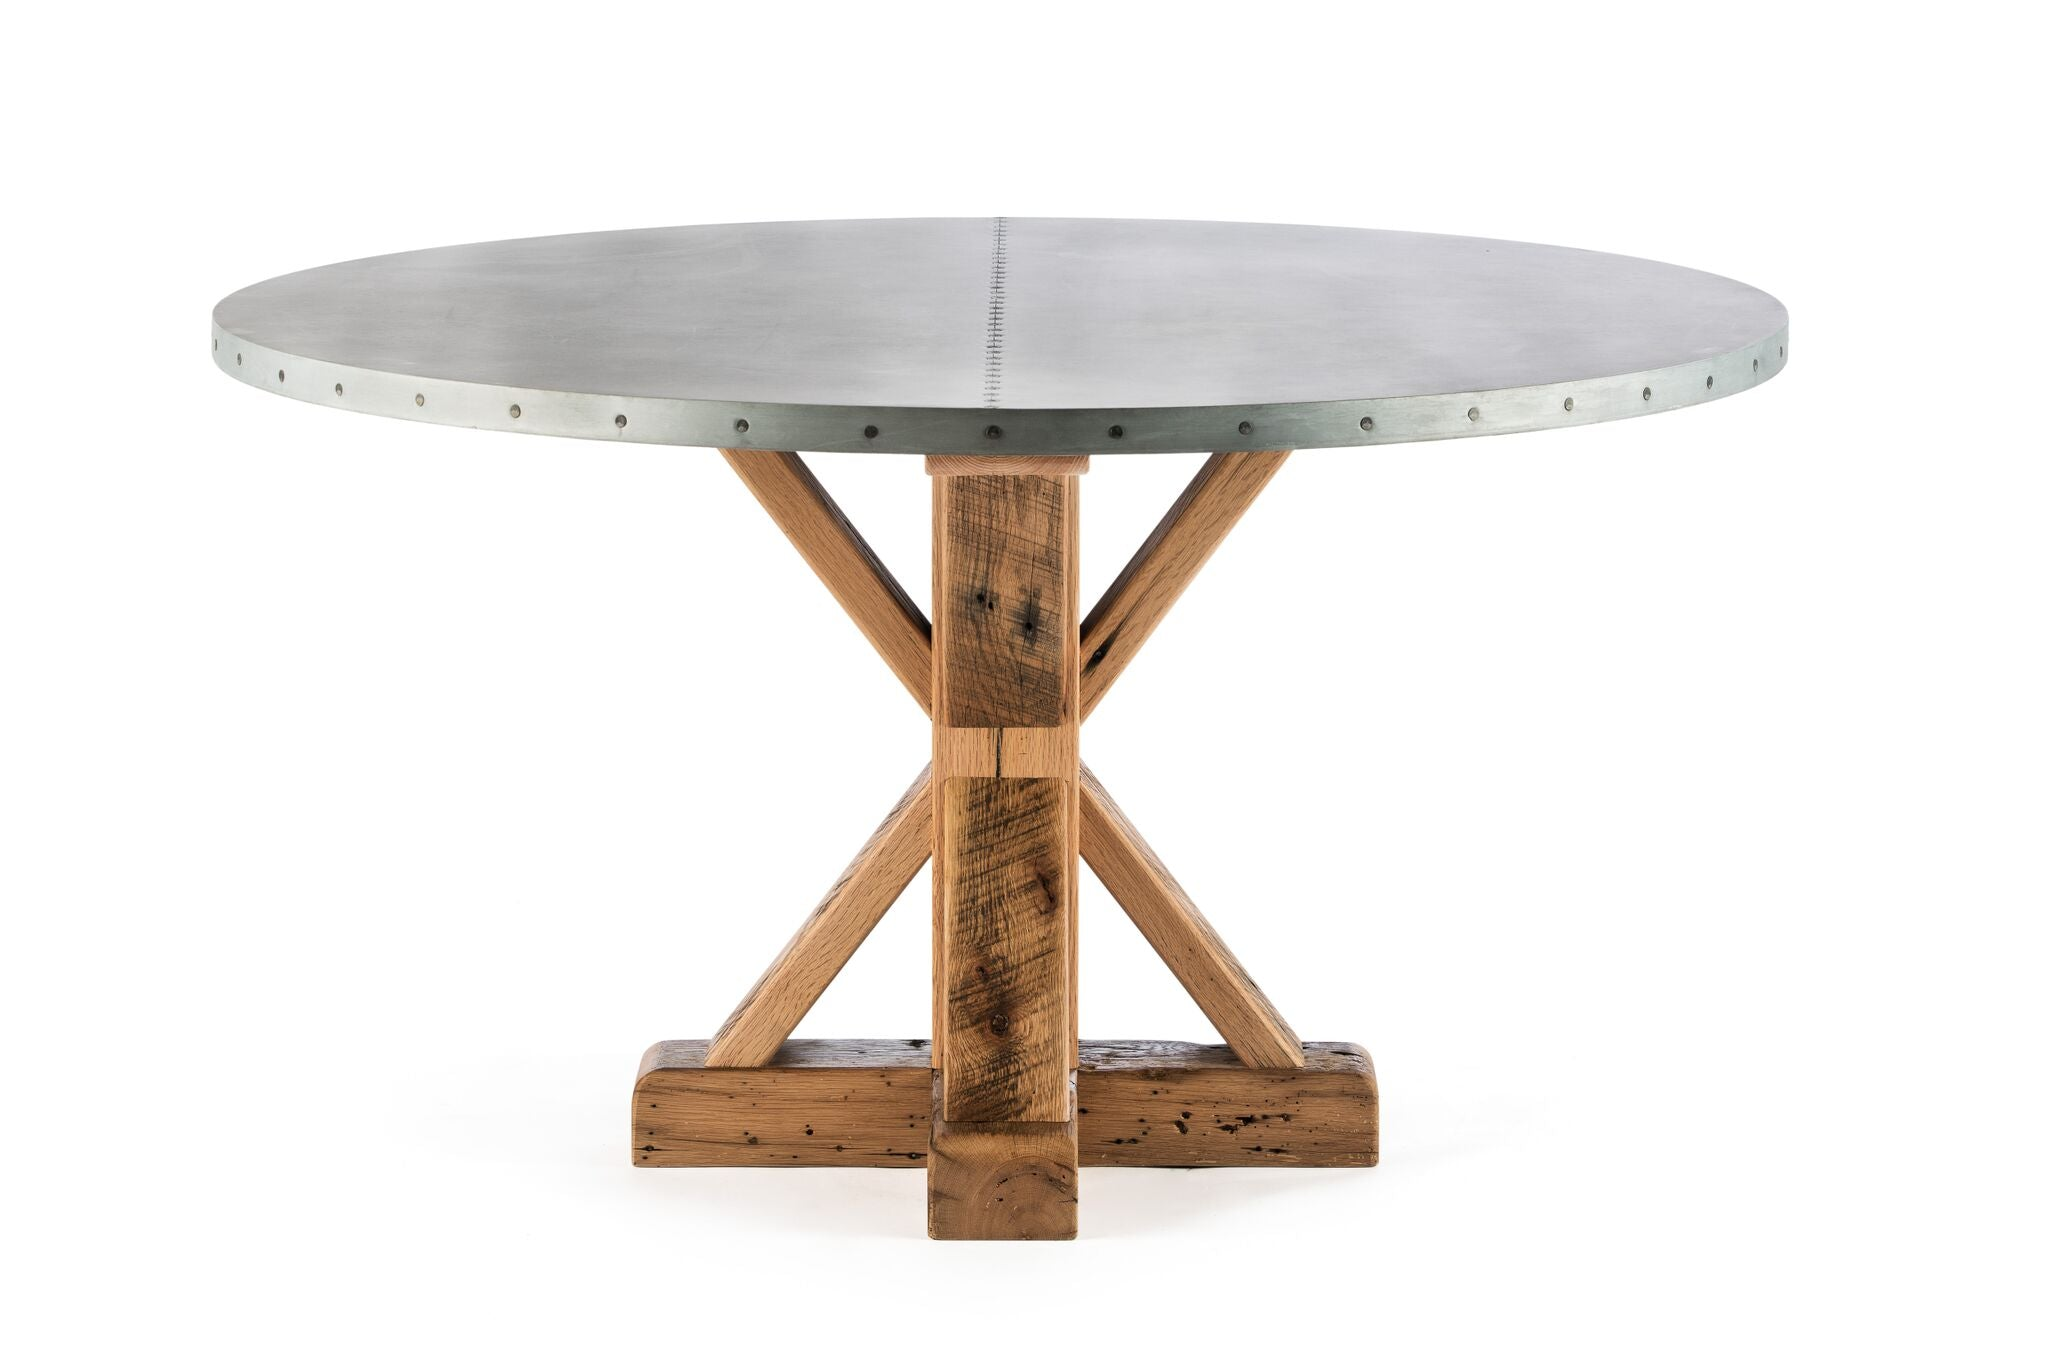 "Zinc Round Tables | French Trestle Table | CLASSIC | Weathered Grey on Reclaimed Oak | CUSTOM SIZE D 48 H 29 | 1.5"" Standard 